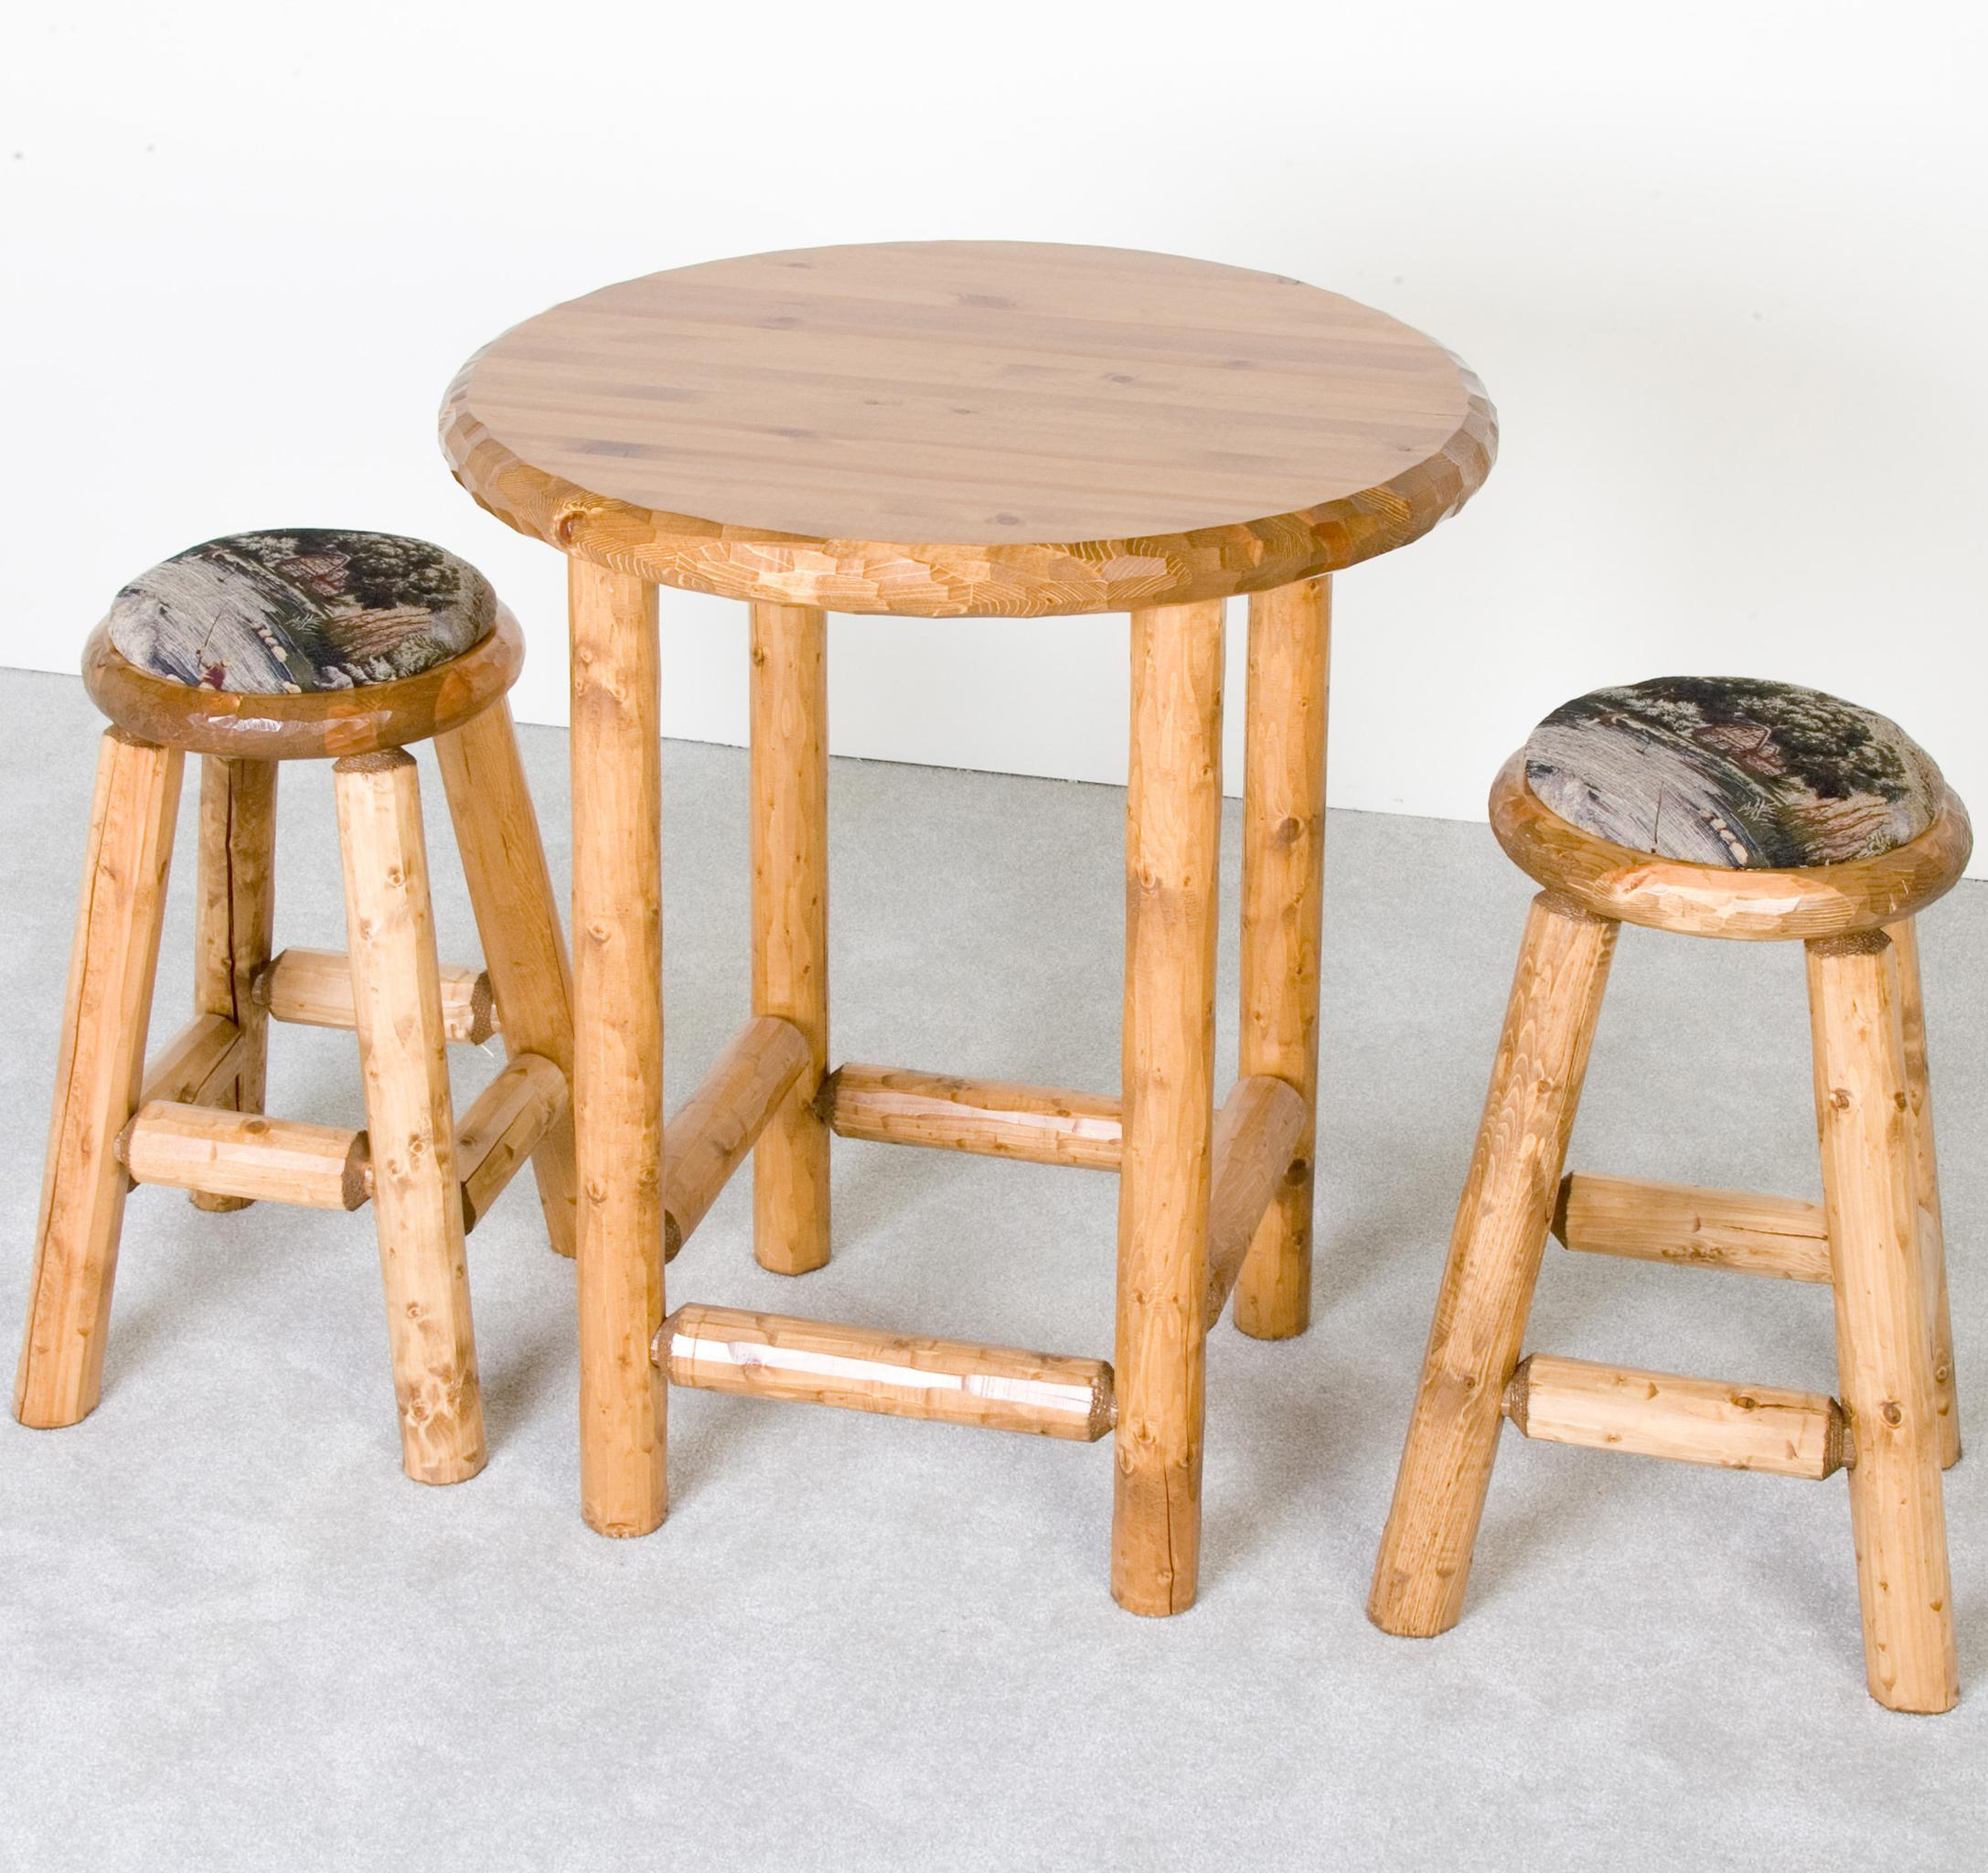 NorthShore by Becker Log Furniture Pub Table and Upholstered Stools - Item Number: NWSNPT+2XNWSPAC1